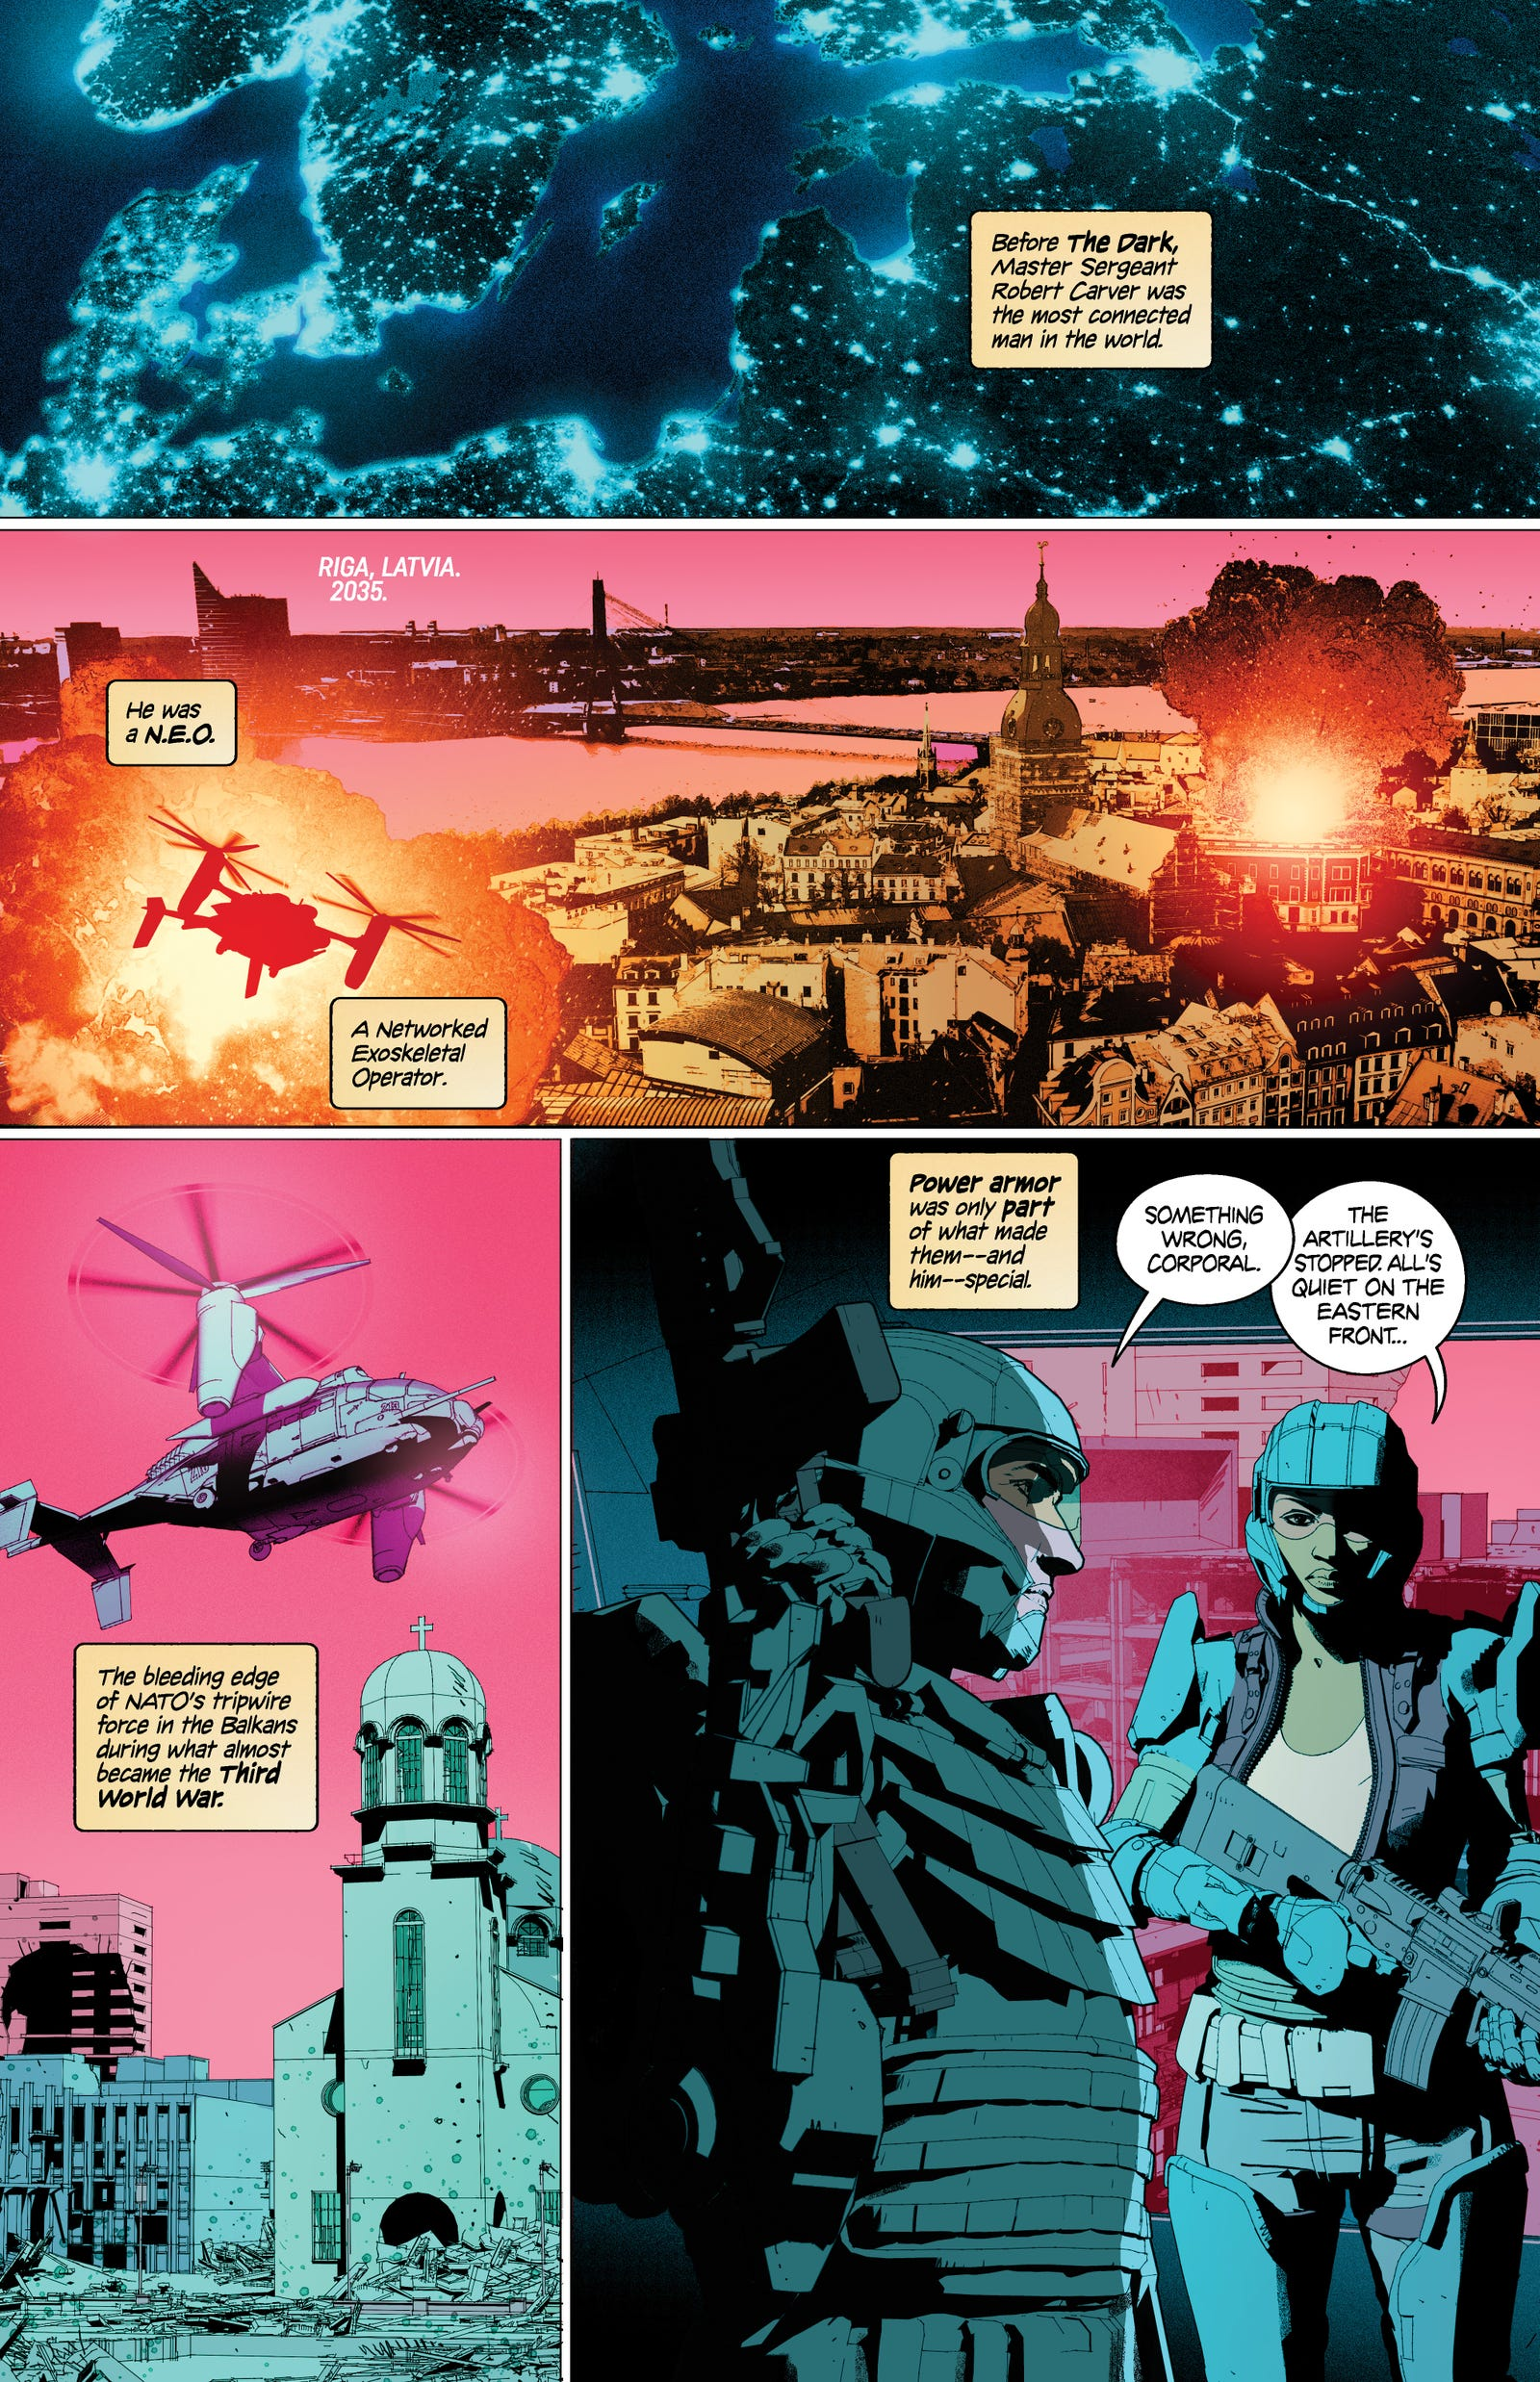 An exclusive look inside the world of The Dark. Art by Kristian Donaldson and Lee Loughridge, lettering by Thomas Mauer.